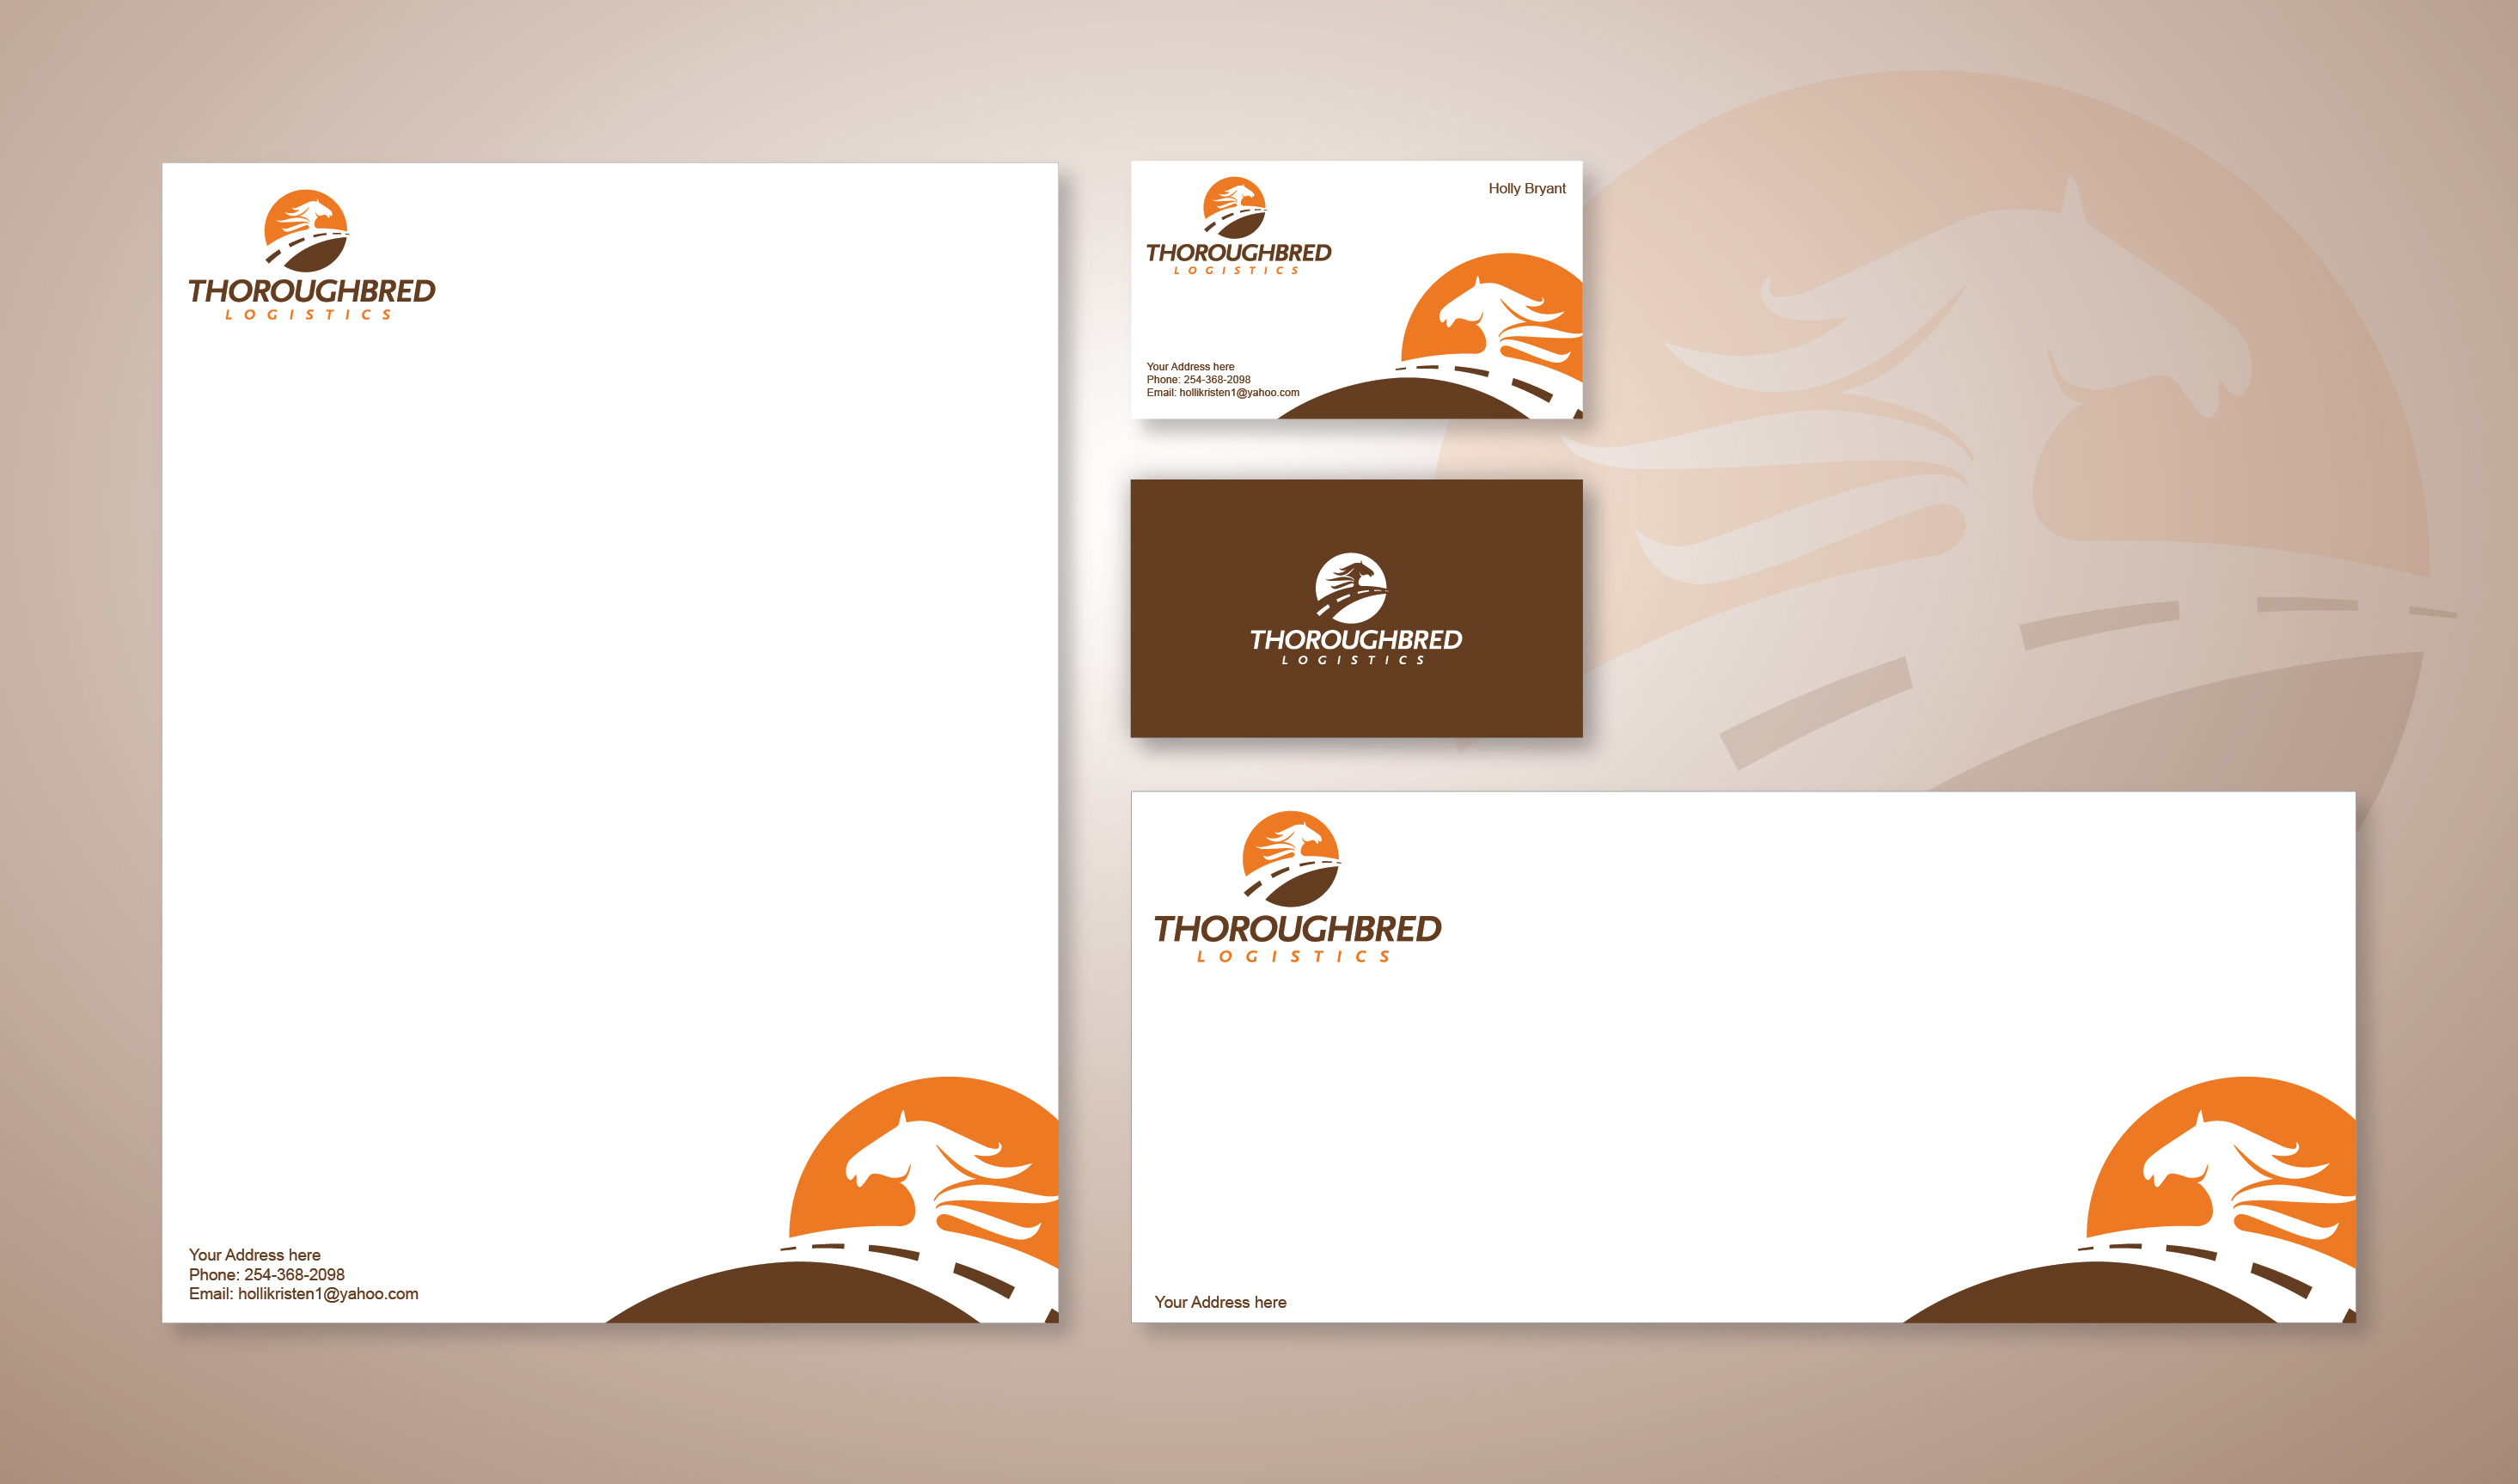 Stationery Design Template for Thoroughbred Logistics - Logo Design Deck